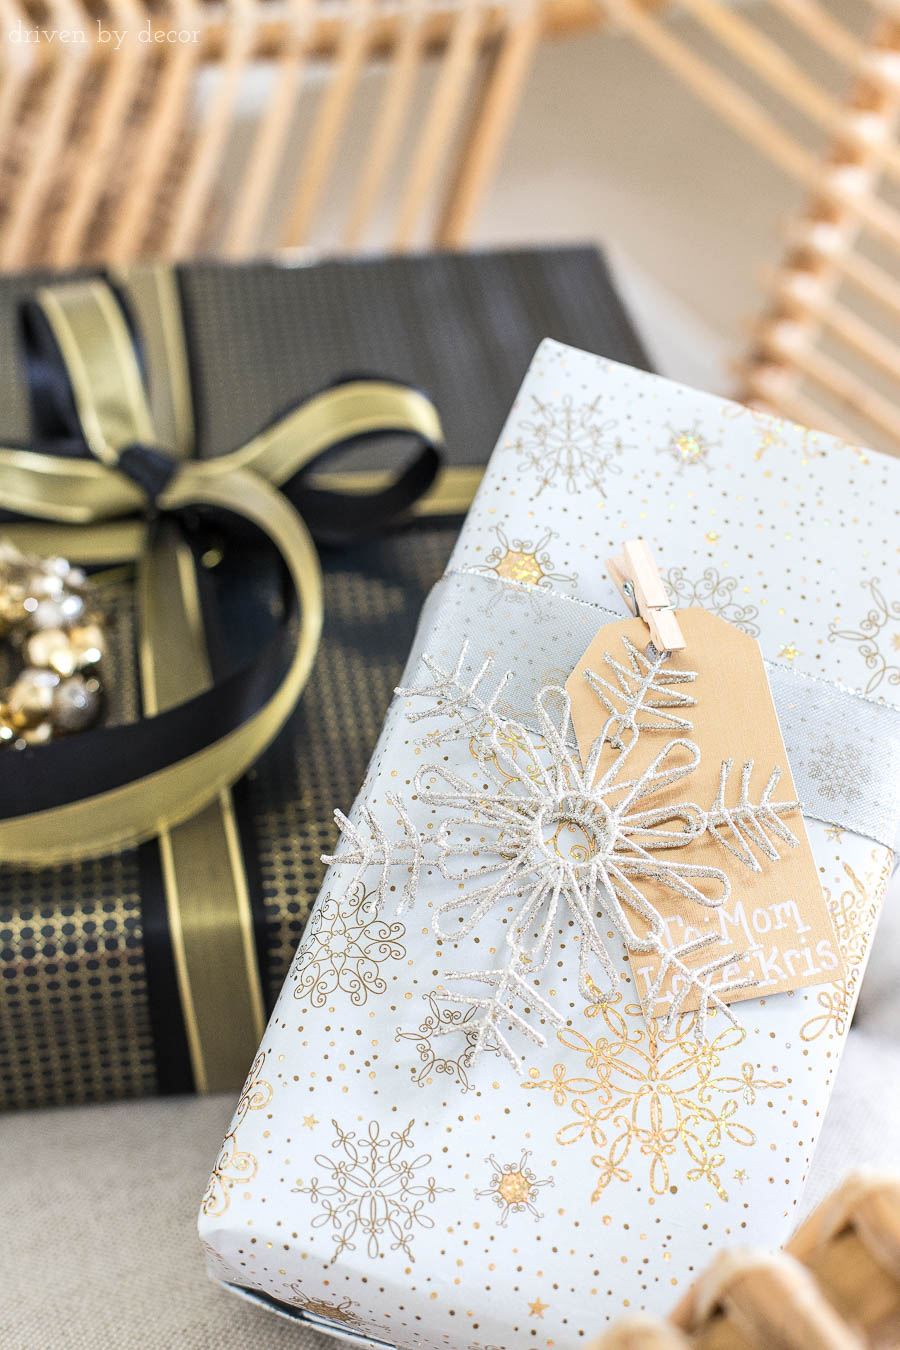 Love how this present's tag is clipped on with a mini clothespin! One of the many easy gift wrapping ideas I loved in this post!